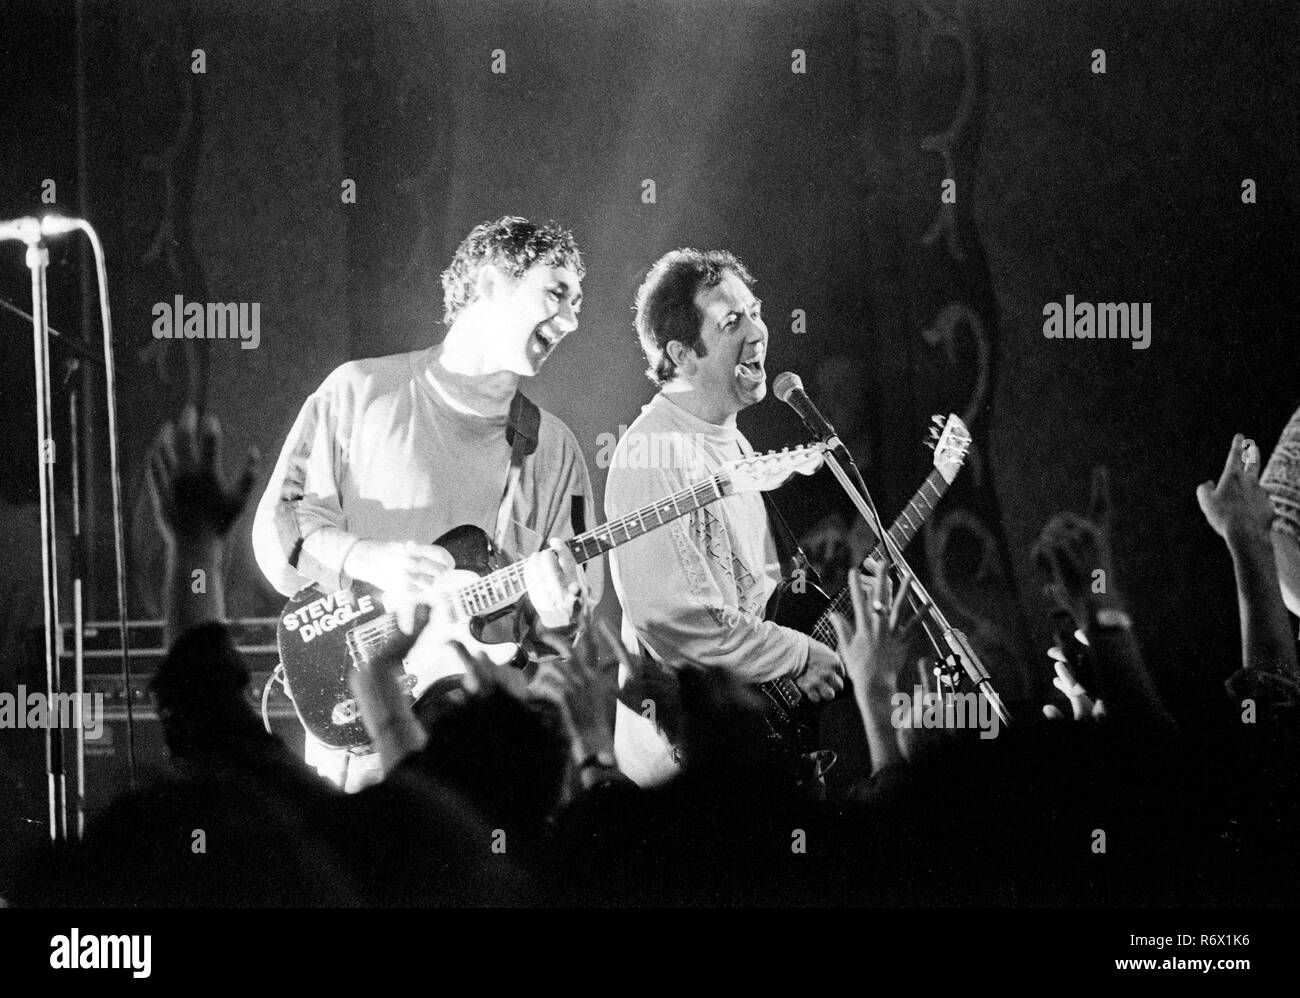 File picture : Pete Shelley (right) and Steve Diggle (left) performing with The Buzzcocks  at the Patti Pavillion in Swansea on 11th October 1990. He has passed away today (6th December 2018) age 63. - Stock Image